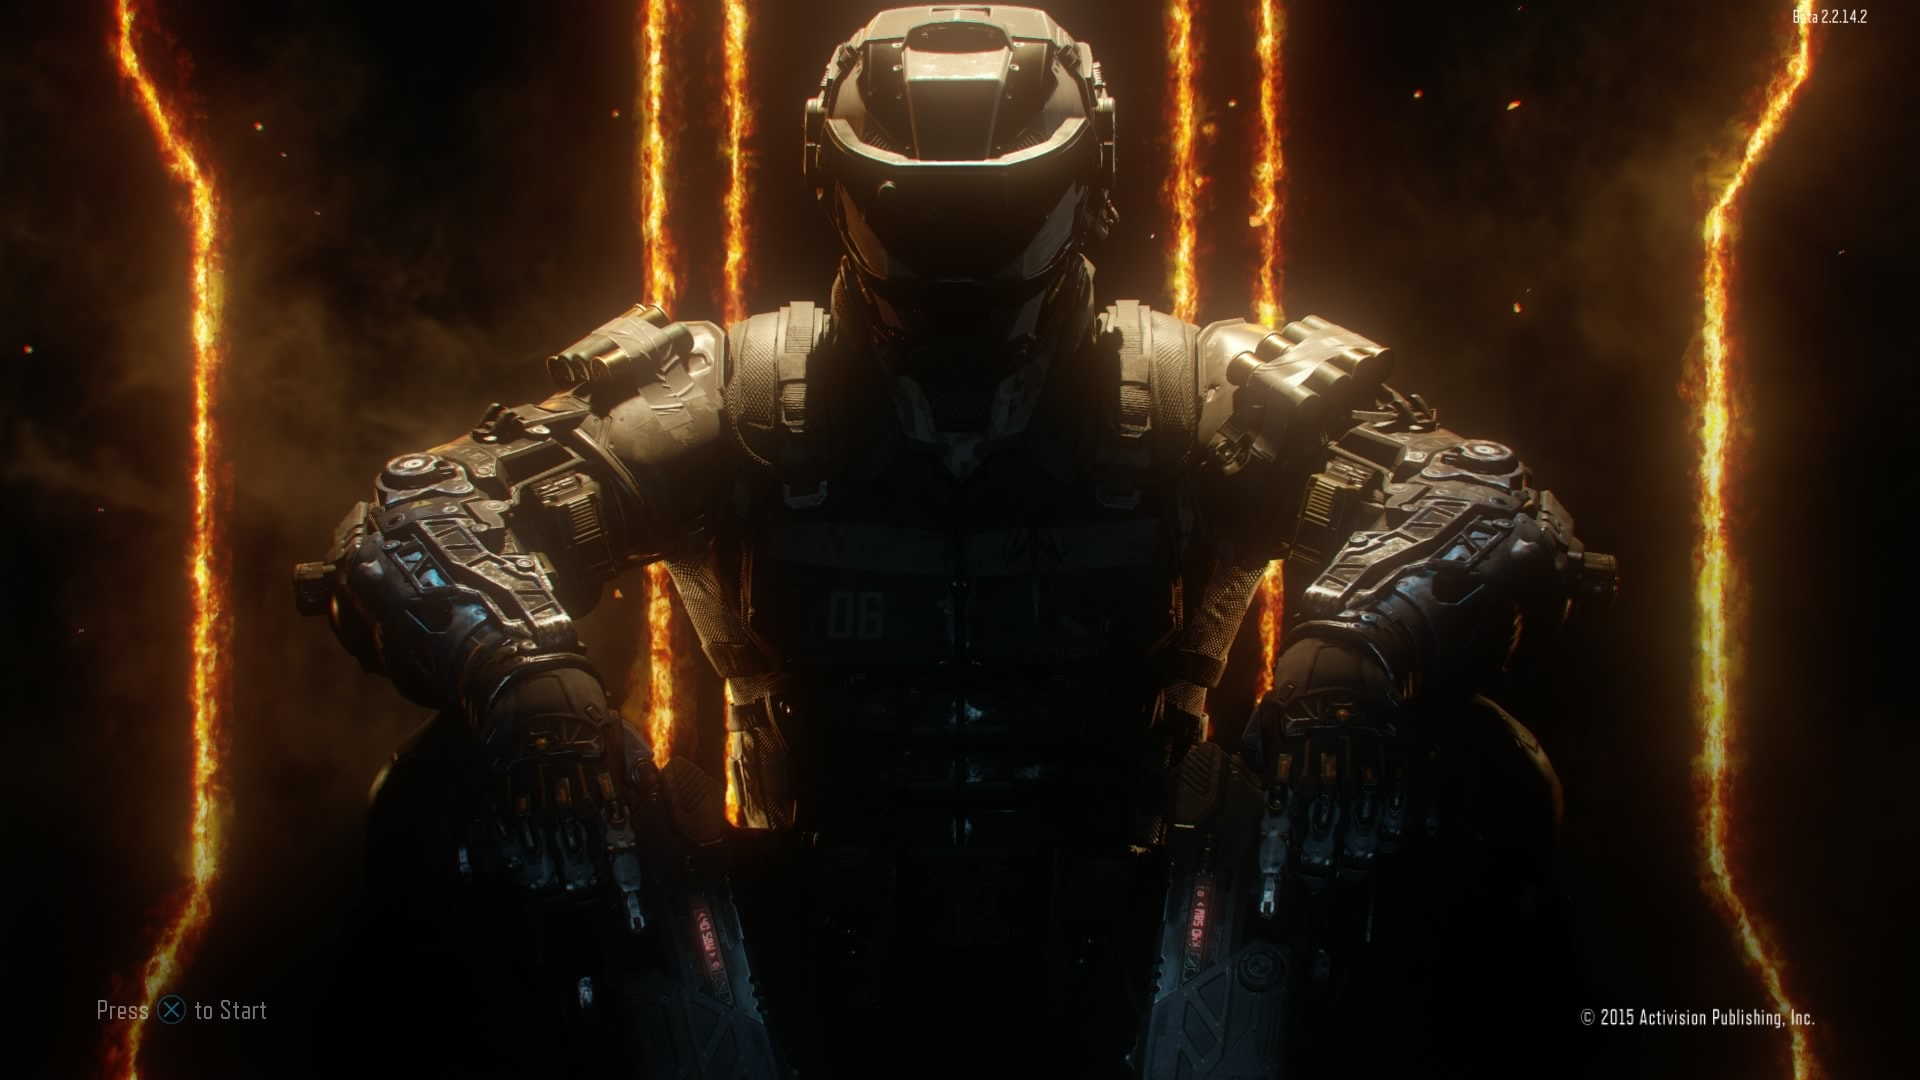 Call Of Duty Black Ops 3 Hd Wallpapers: Call Of Duty: Black Ops 3 HD Desktop Wallpapers